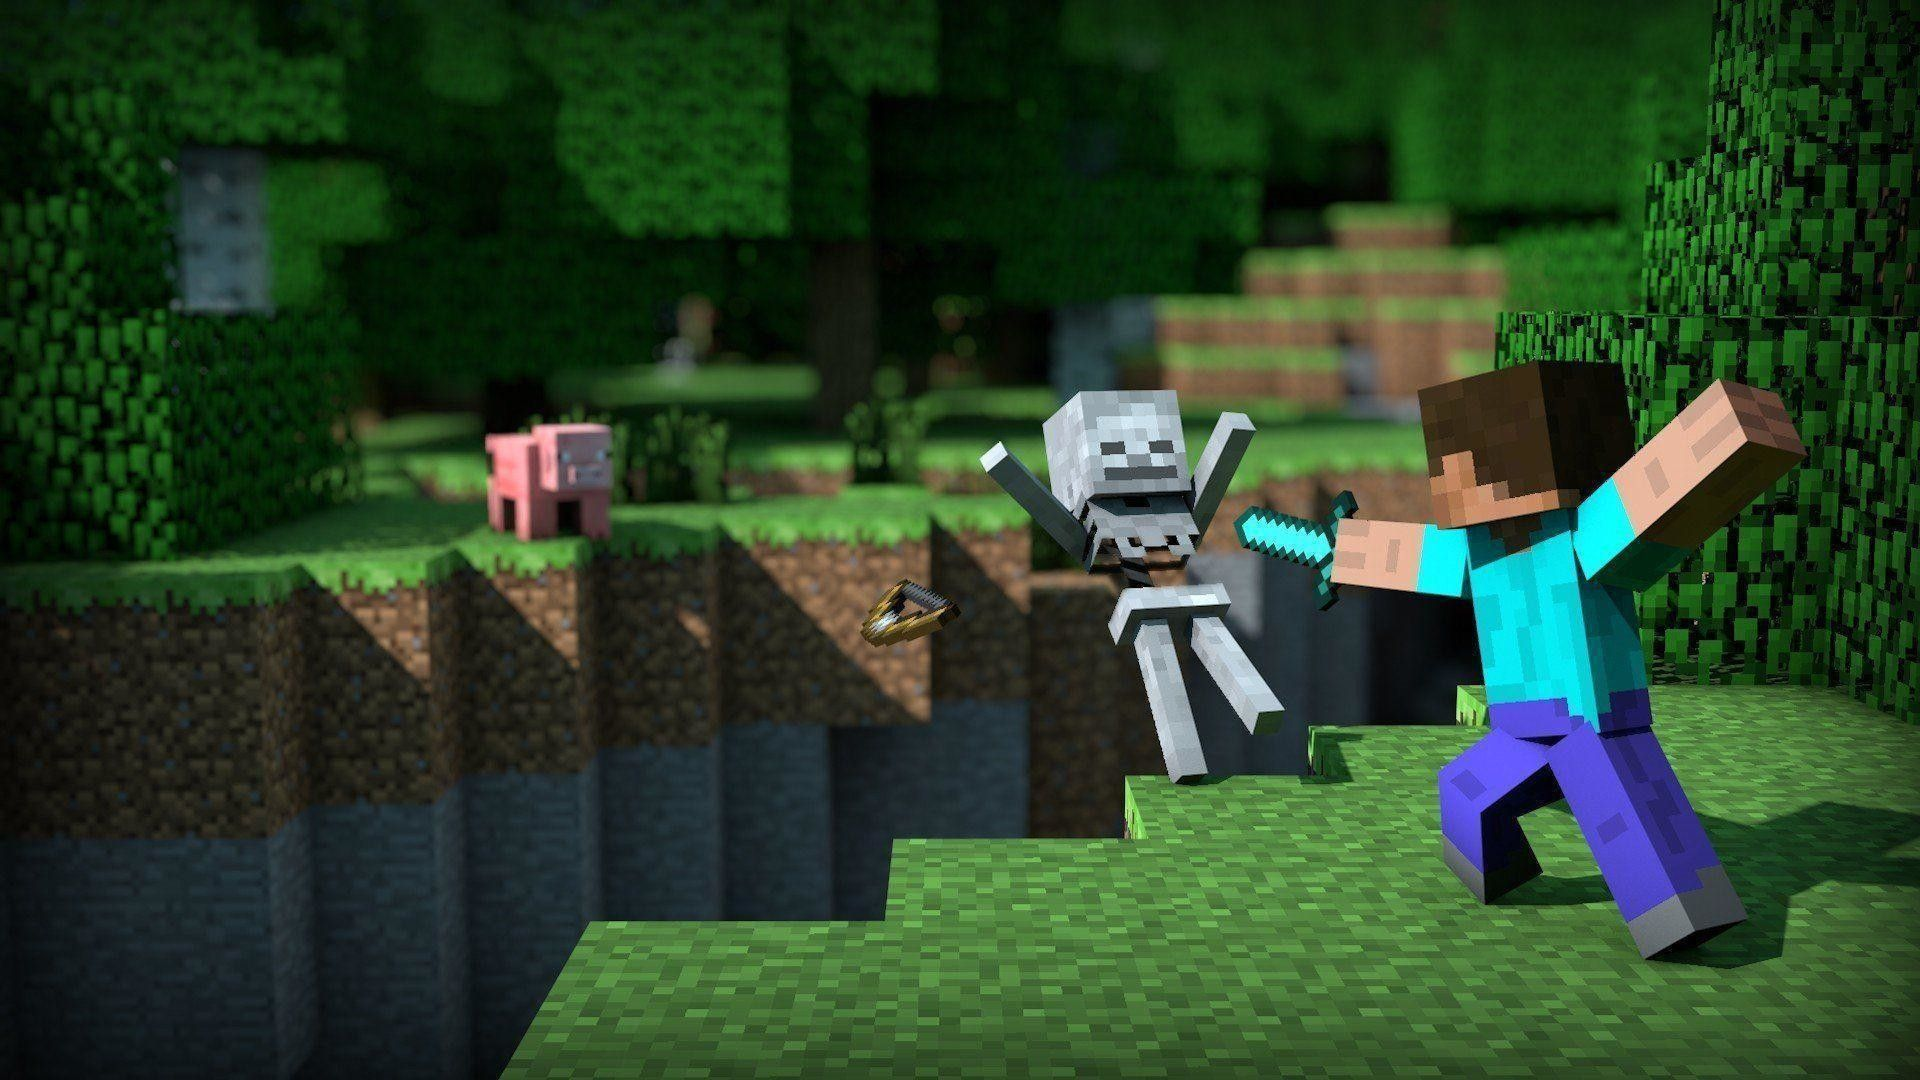 Funny Minecraft Backgrounds 68 Images Minecraft Wallpaper Ba